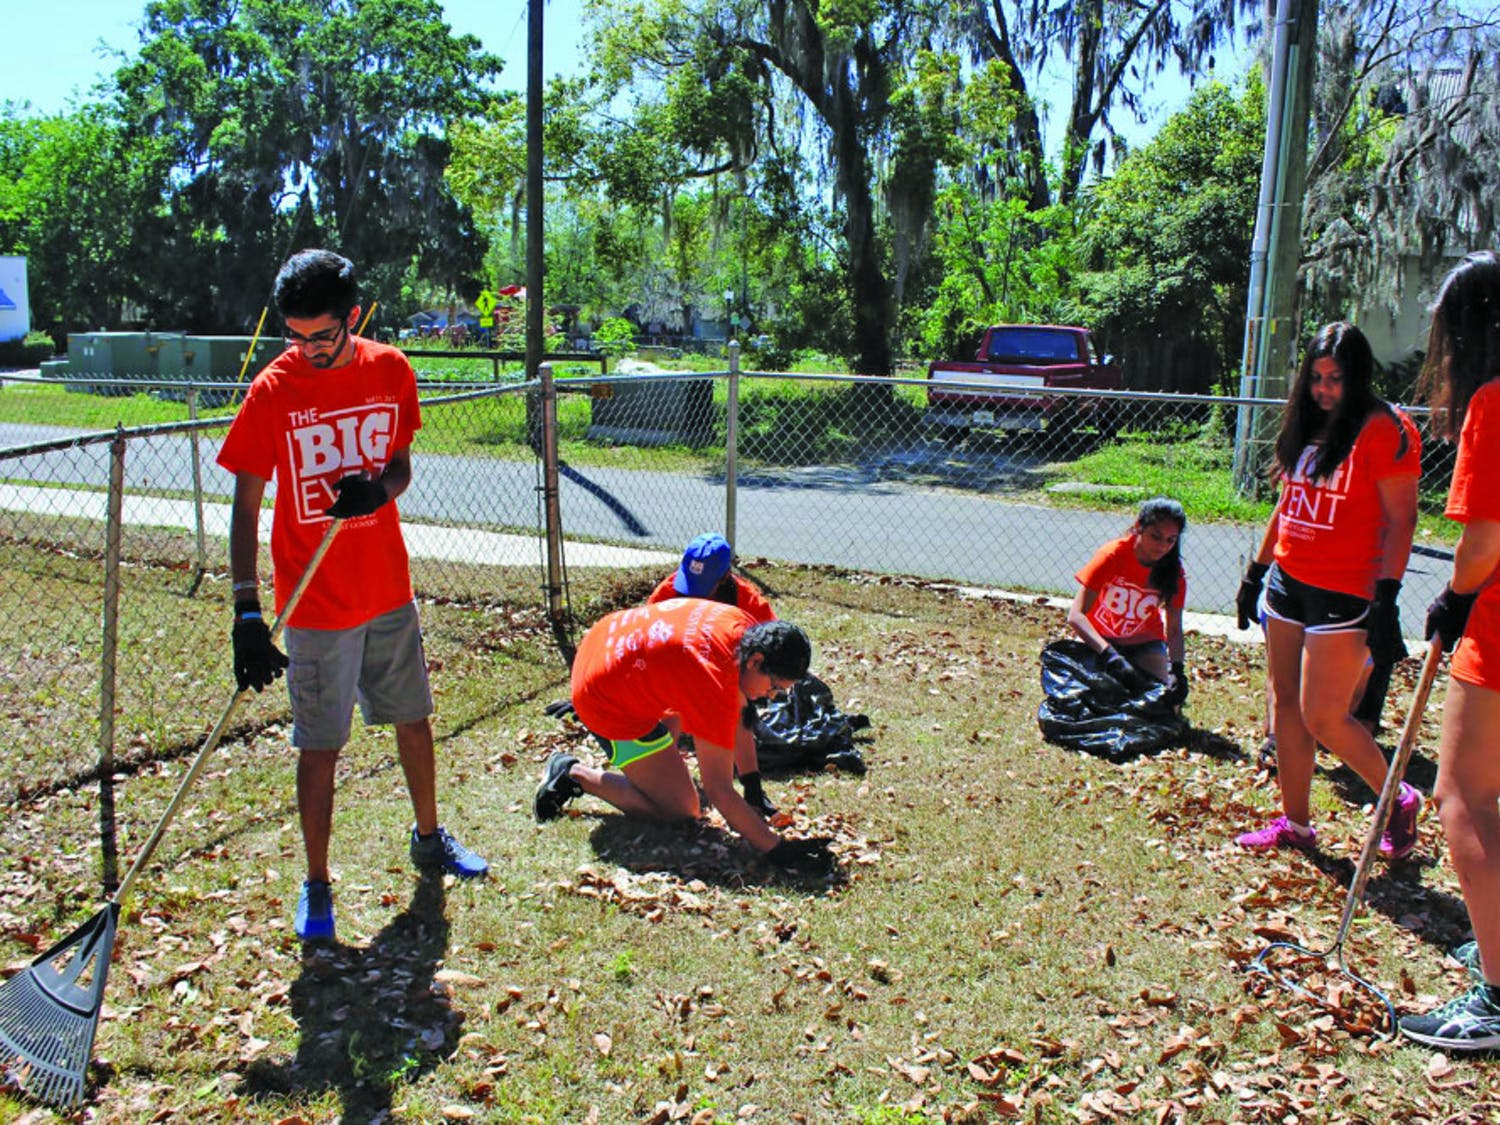 Amol Patadia, a 20-year-old UF biomedical engineering sophomore, rakes fallen leaves behind the home of a visually impaired woman in Gainesville's Porters Community on Saturday as a part of The Big Event, a daylong service event organized by UF Student Government. About 760 students participated at about 45 locations across Gainesville.